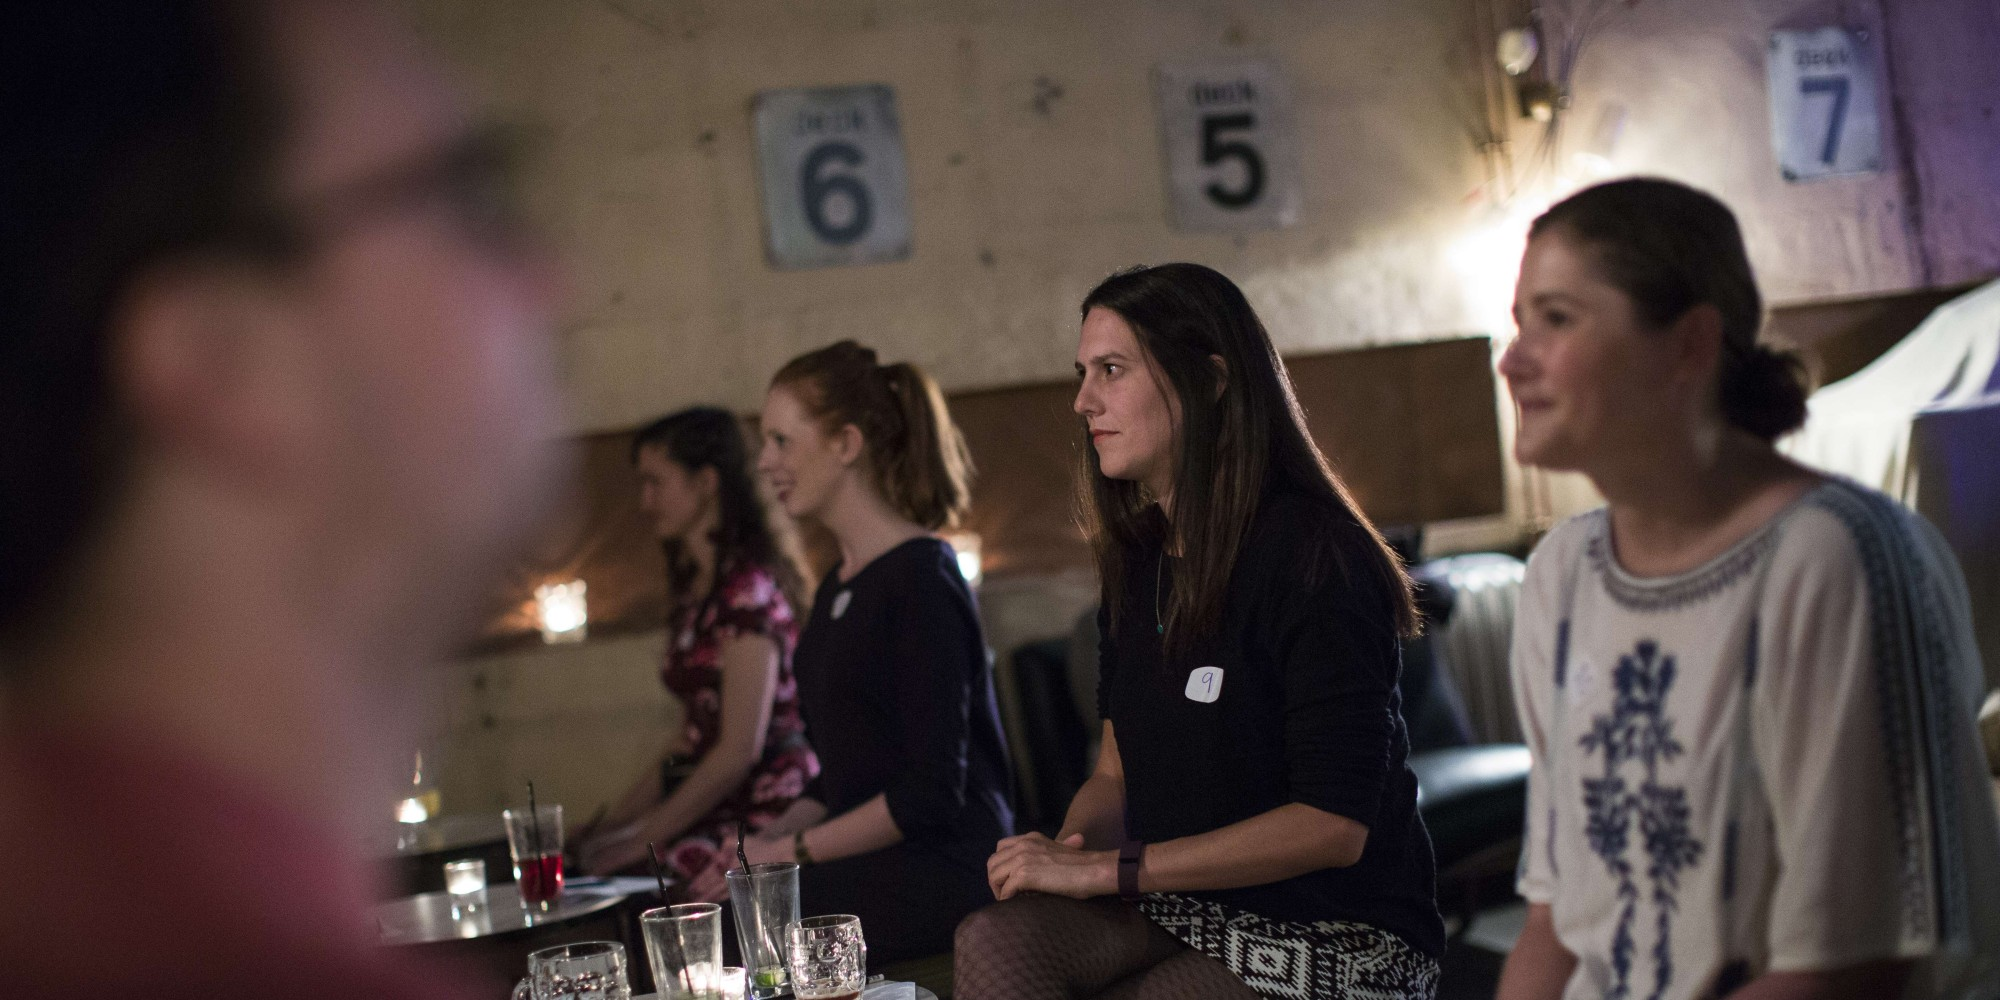 hipster speed dating melbourne Looking for love (in all the wrong places) northcote social club is here to help the bar will be hosting four separate speed dating events for people to fin.